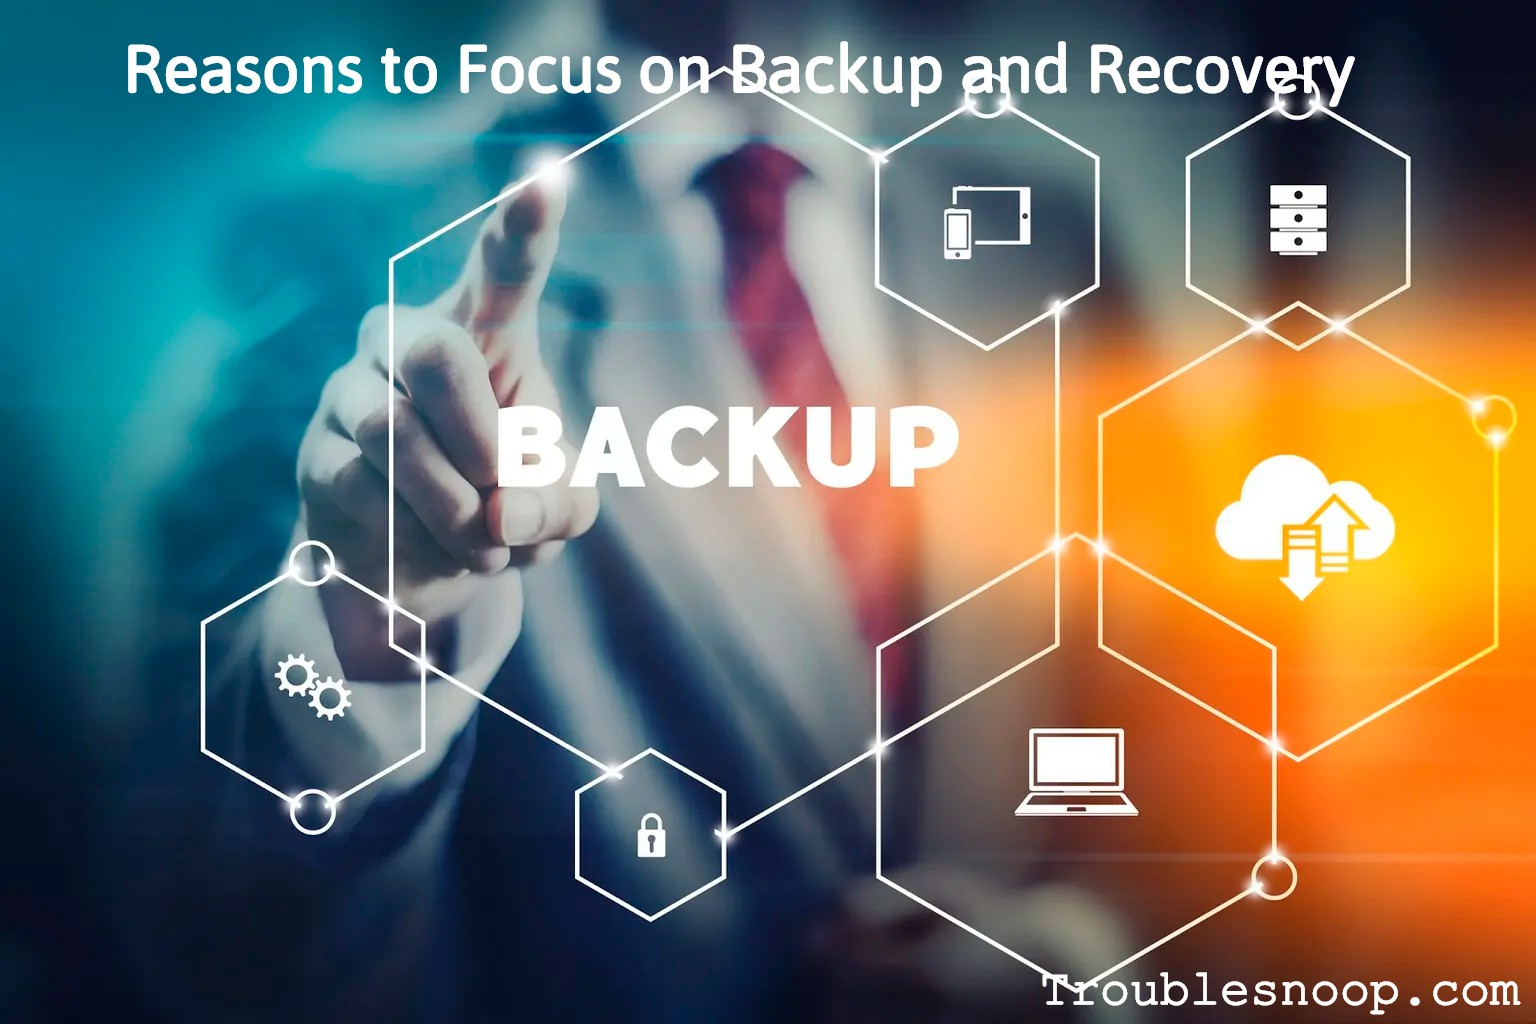 Reasons to Focus on Backup and Recovery